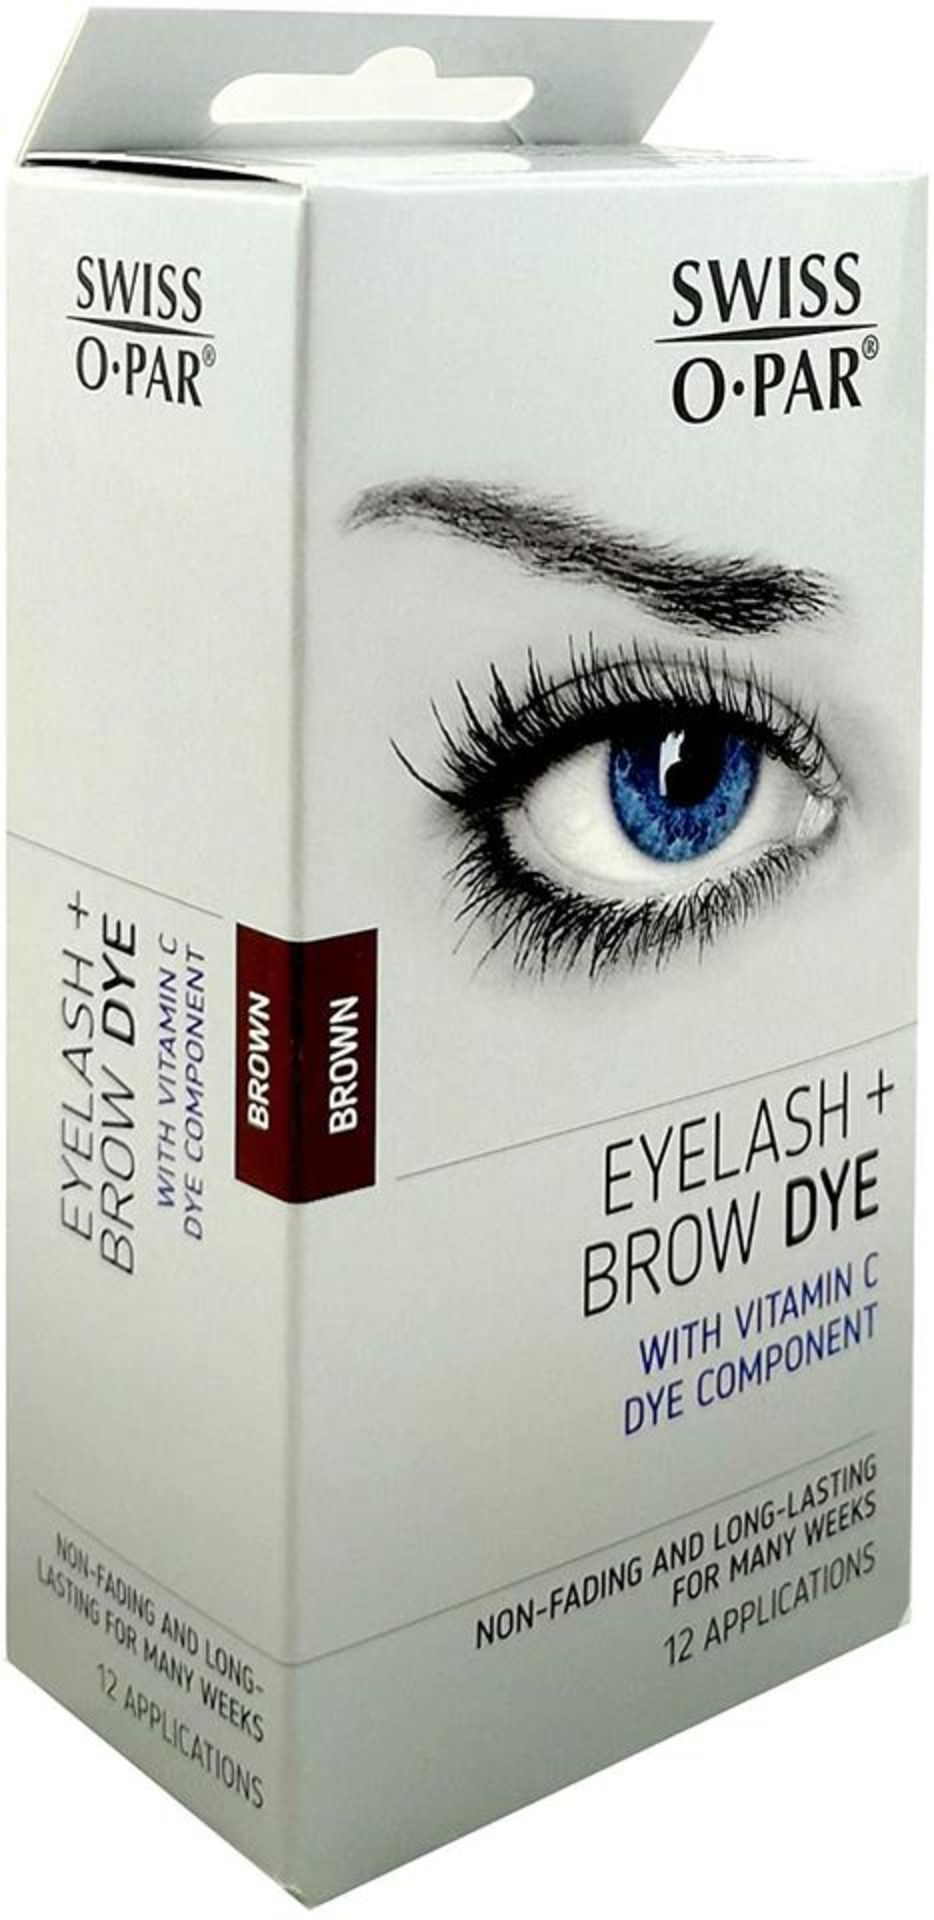 Swiss O Par Eyelash And Brow Dye Tint Colour Kit - Brown